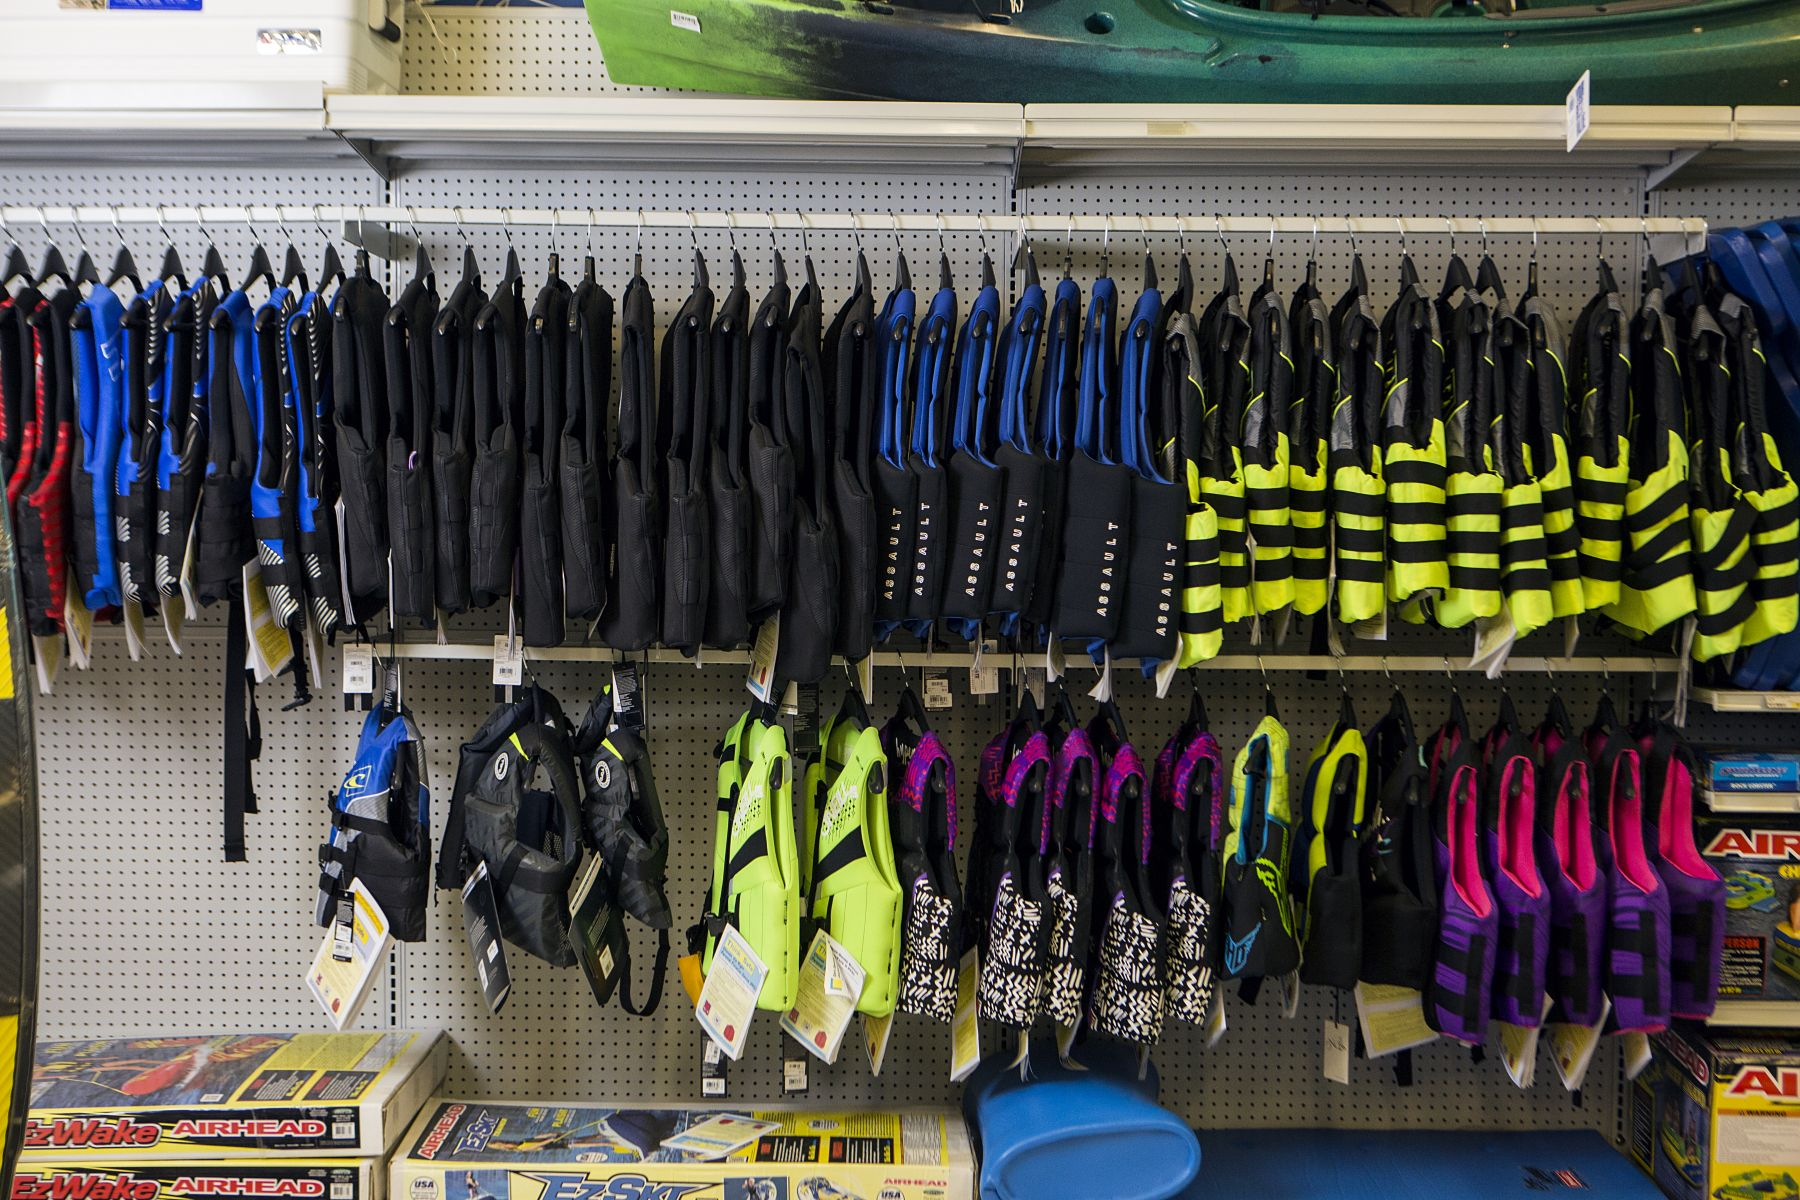 Life jackets on display at a retail outlet.